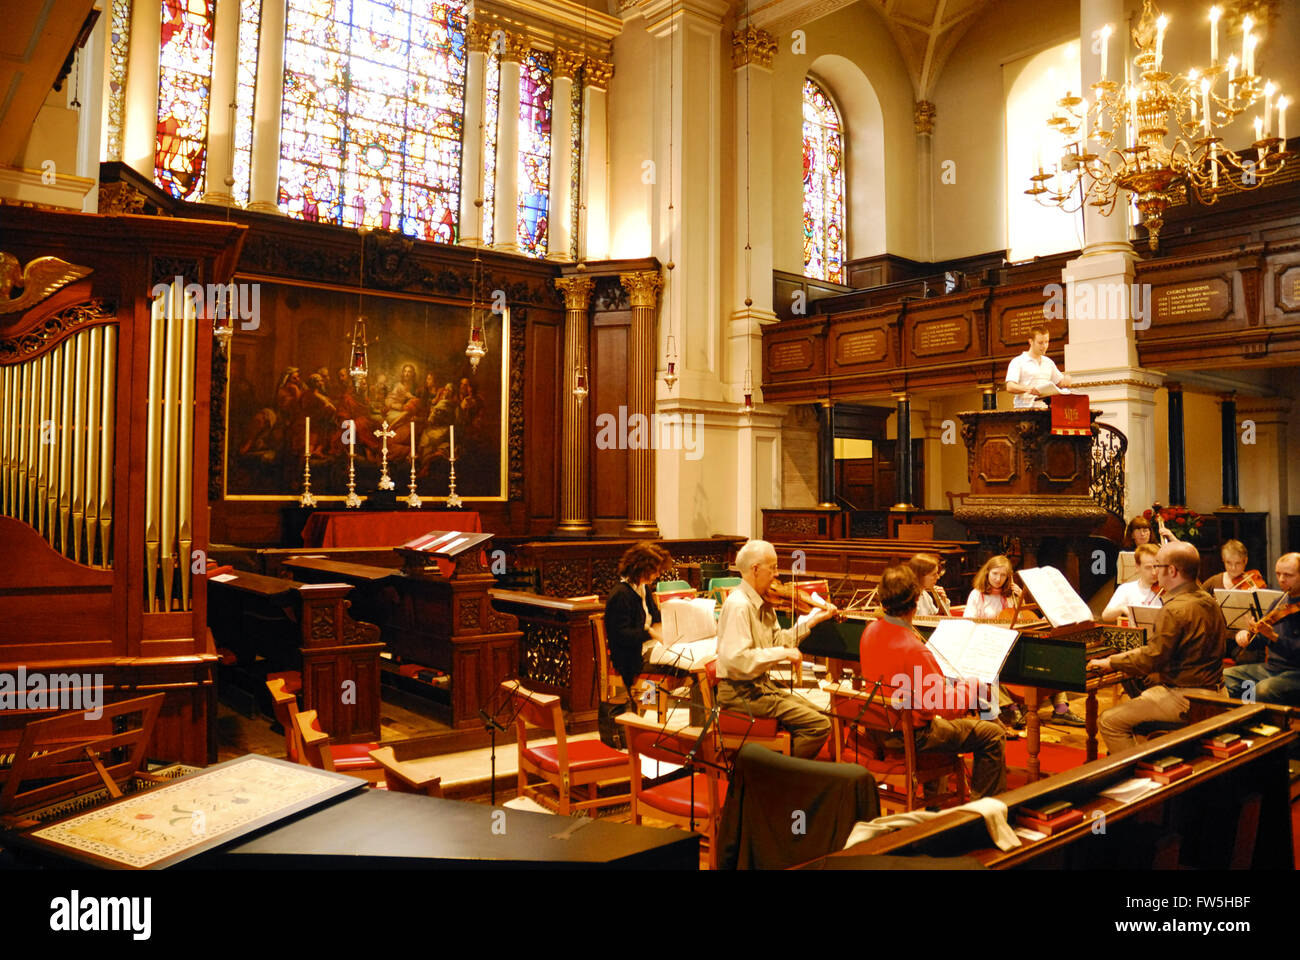 St. George's Church, Hanover Square, Handel's church, English composer, completed 1725, rehearsal of London Handel - Stock Image